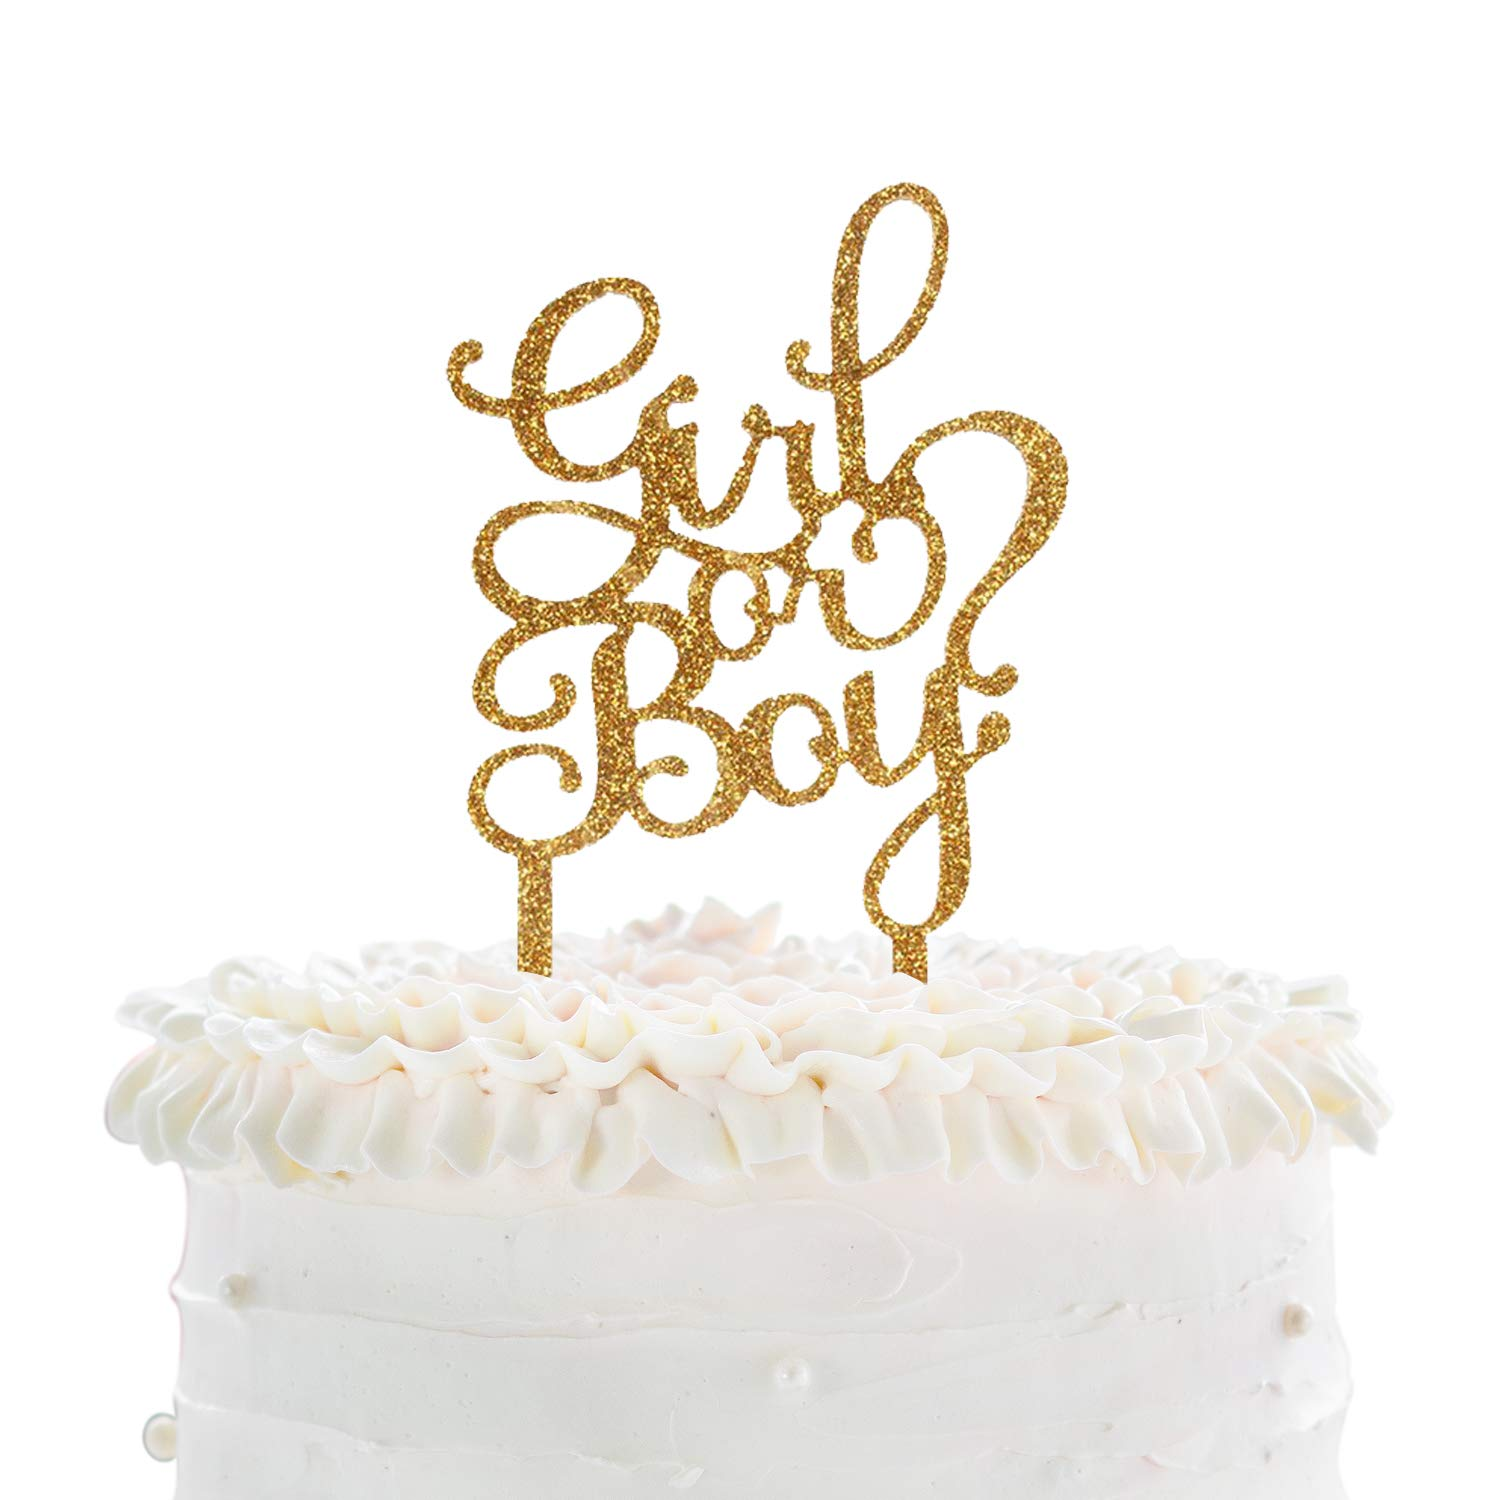 Hatcher lee Girl or Boy Cake Topper Gold Acrylic Baby Shower Party Decoration Sign 1